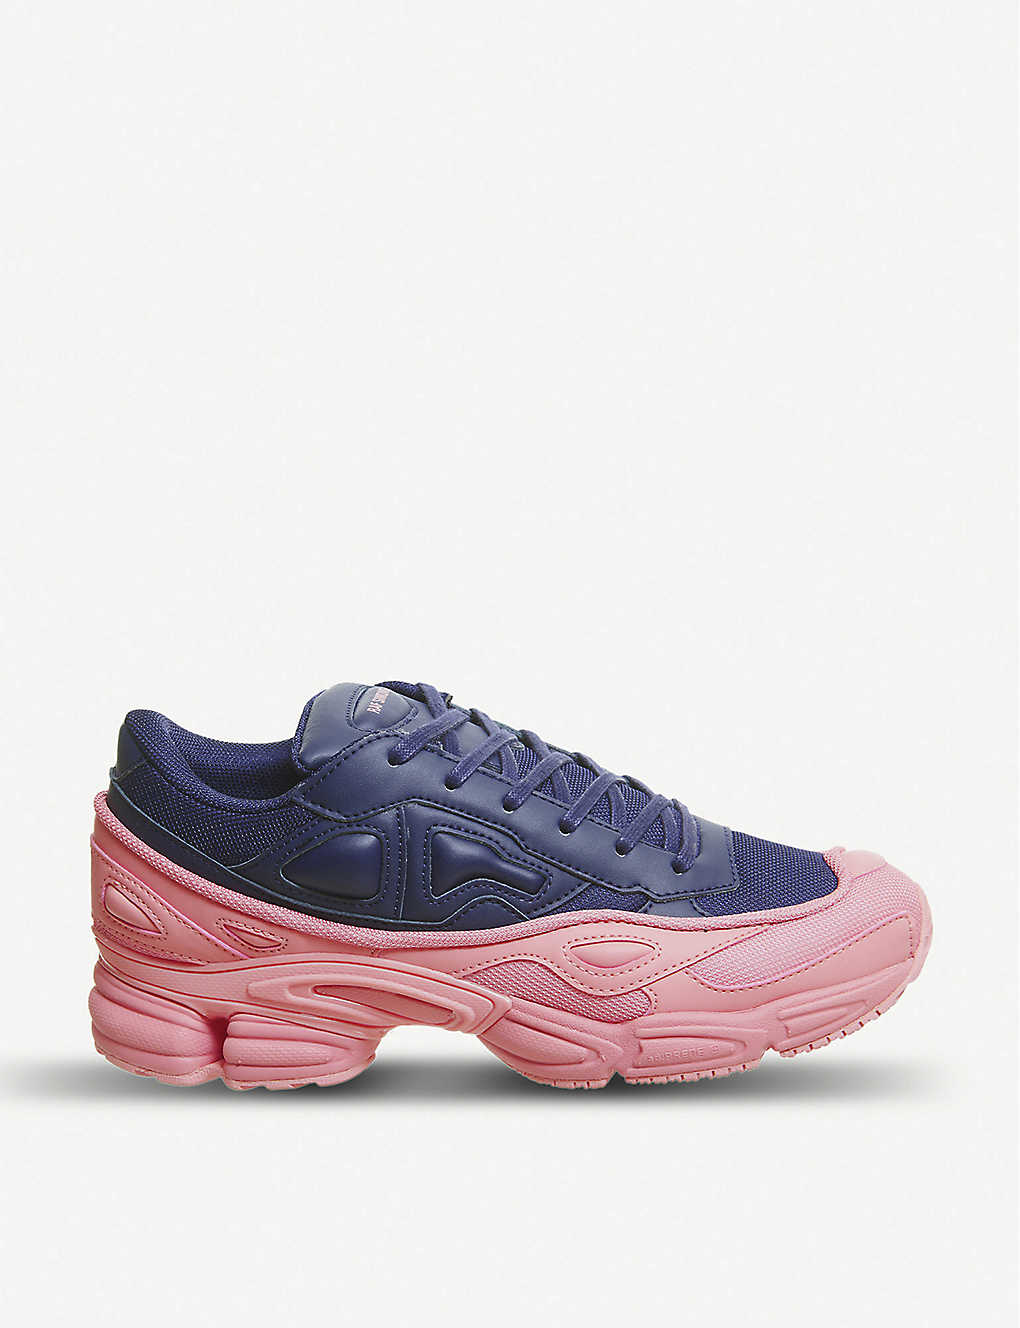 quality design 782d0 99067 Ozweego III leather and mesh trainers - Pink navy ...